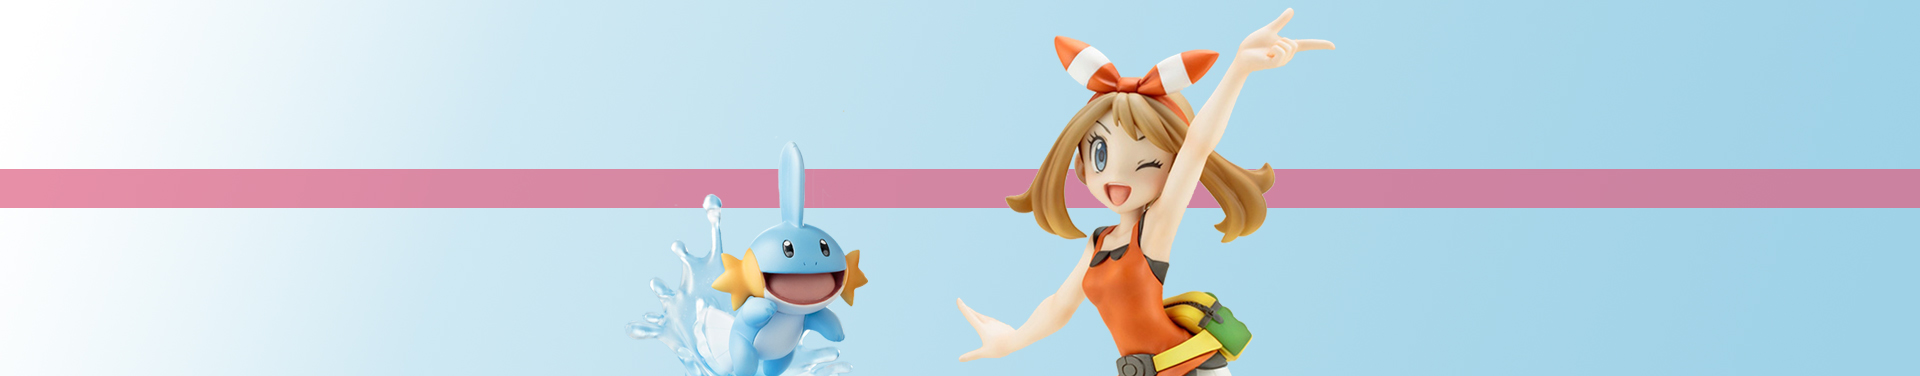 Pokémon: Advanced Generation ARTFX J Figure Series 1/8 Statue: Maike & Hydropi